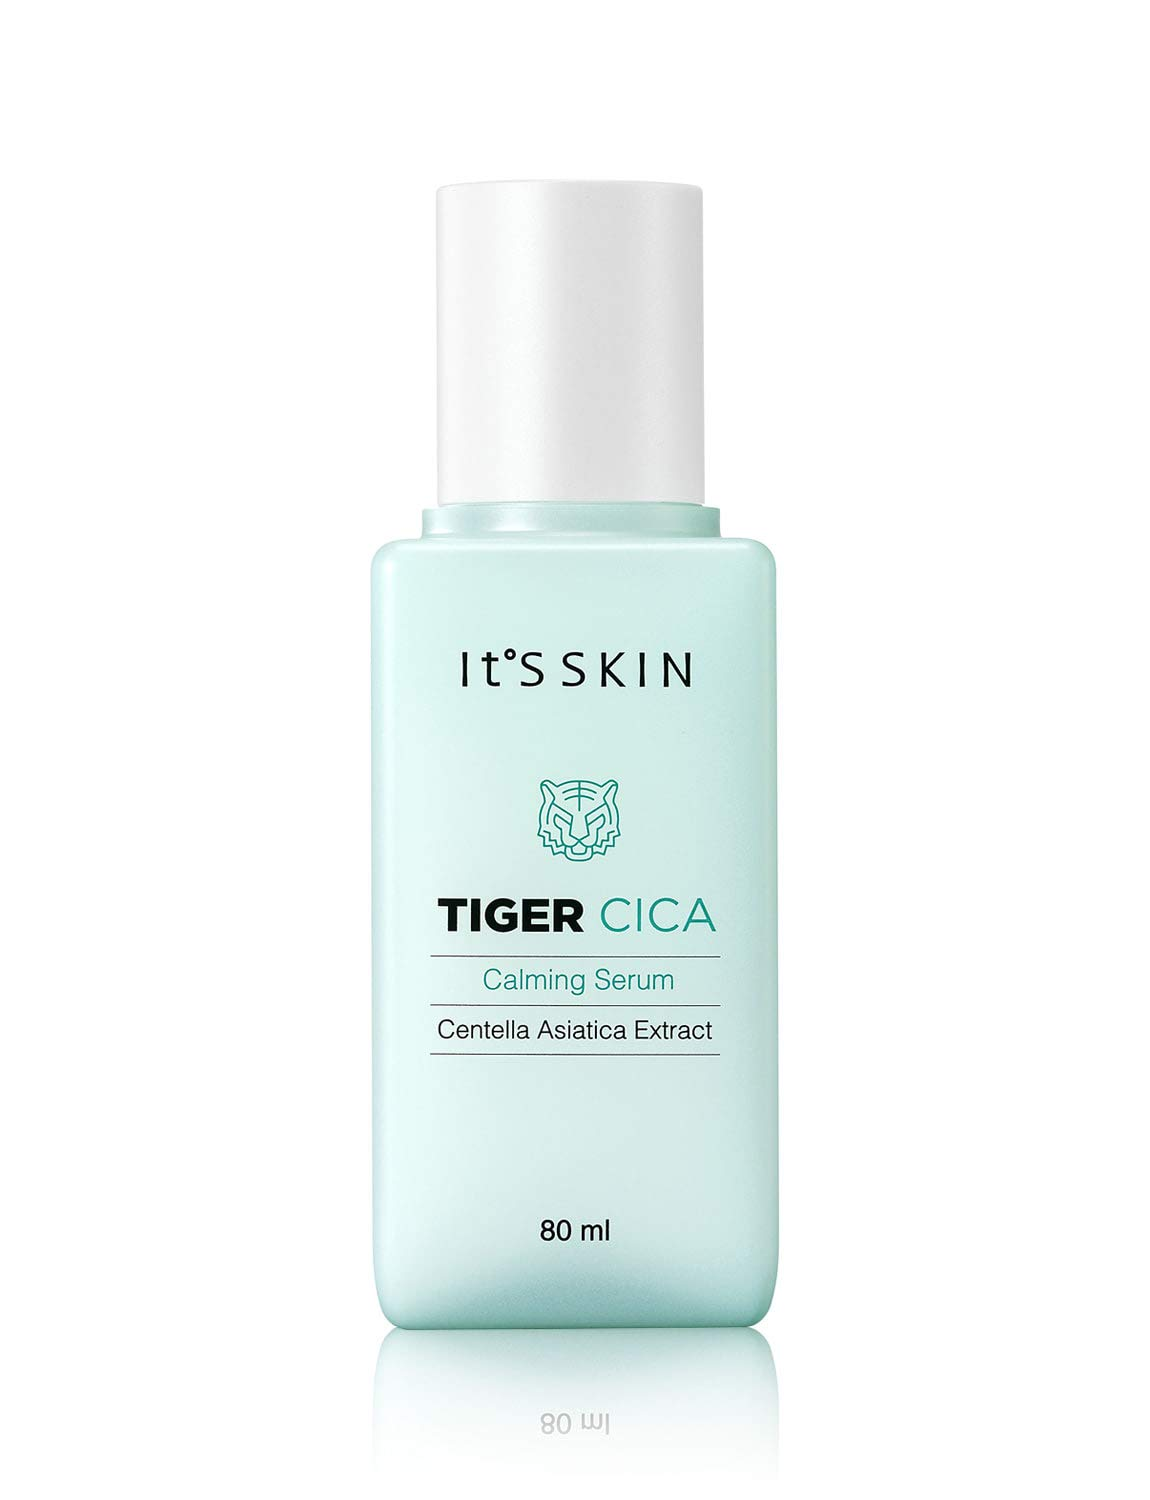 It'S SKIN - Tiger Cica Calming Serum